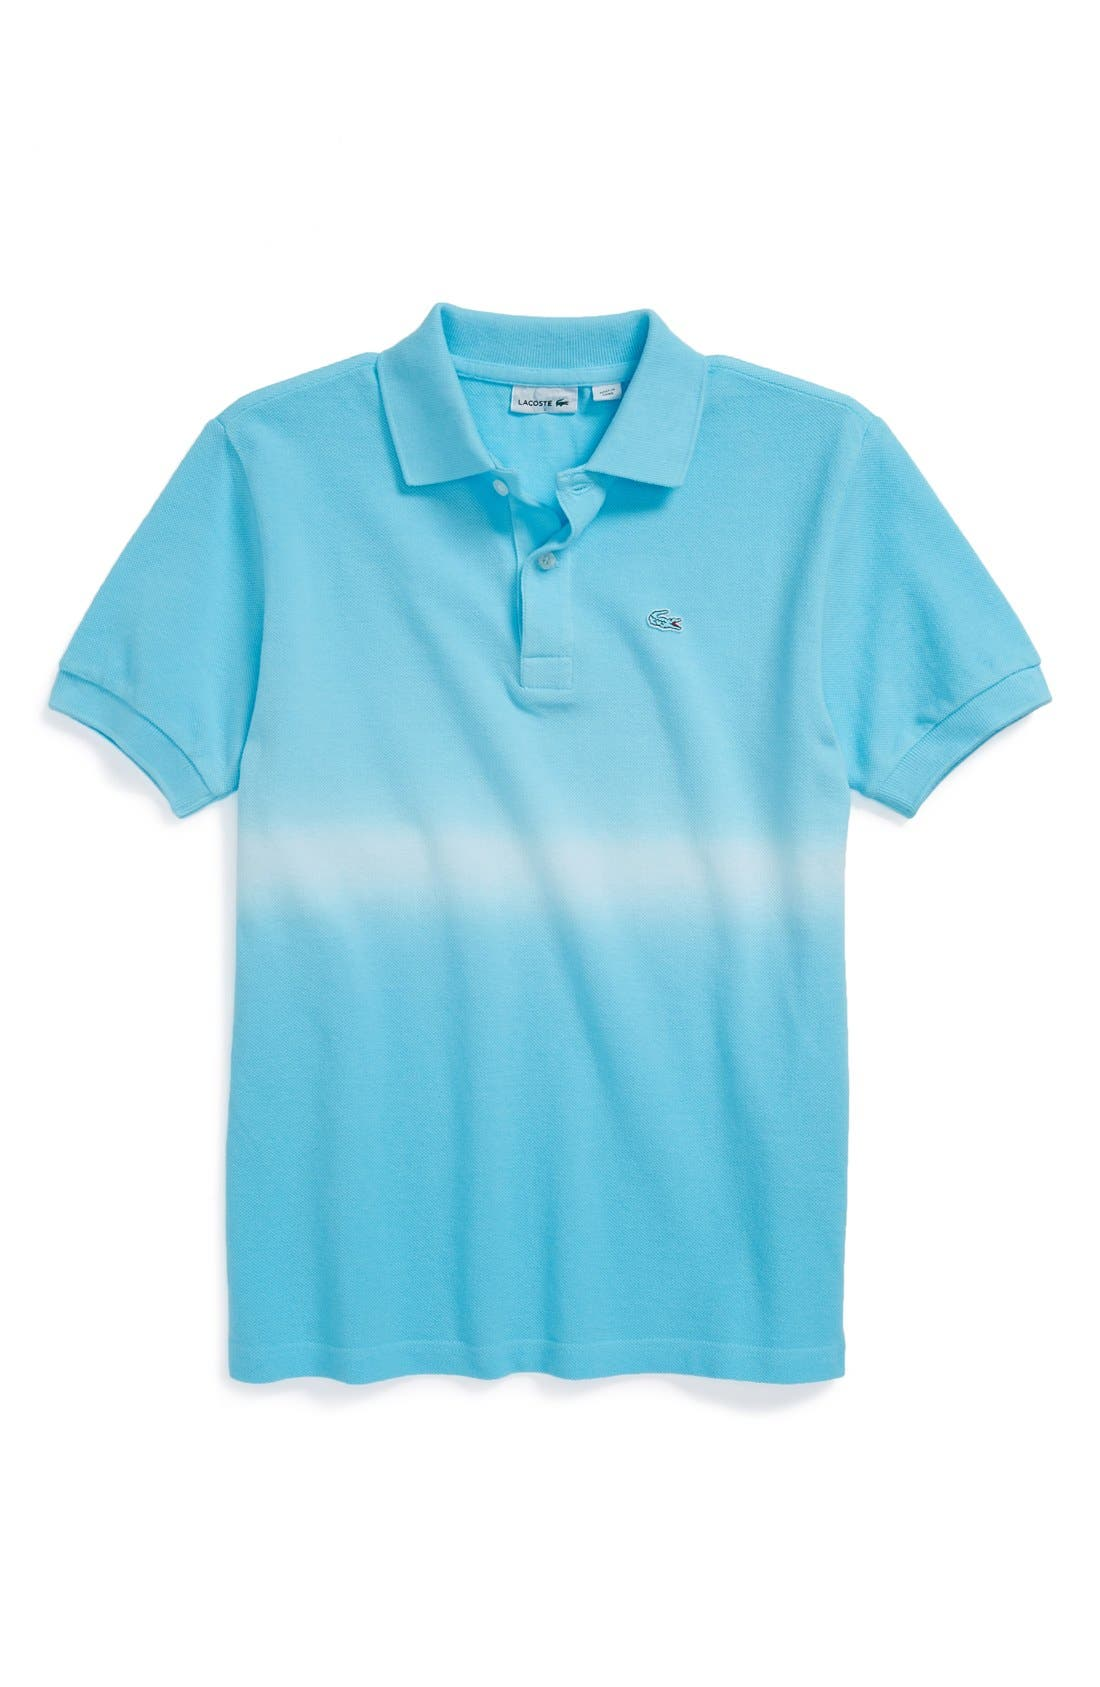 Alternate Image 1 Selected - Lacoste Dip Dye Cotton Piqué Polo (Little Boys & Big Boys)